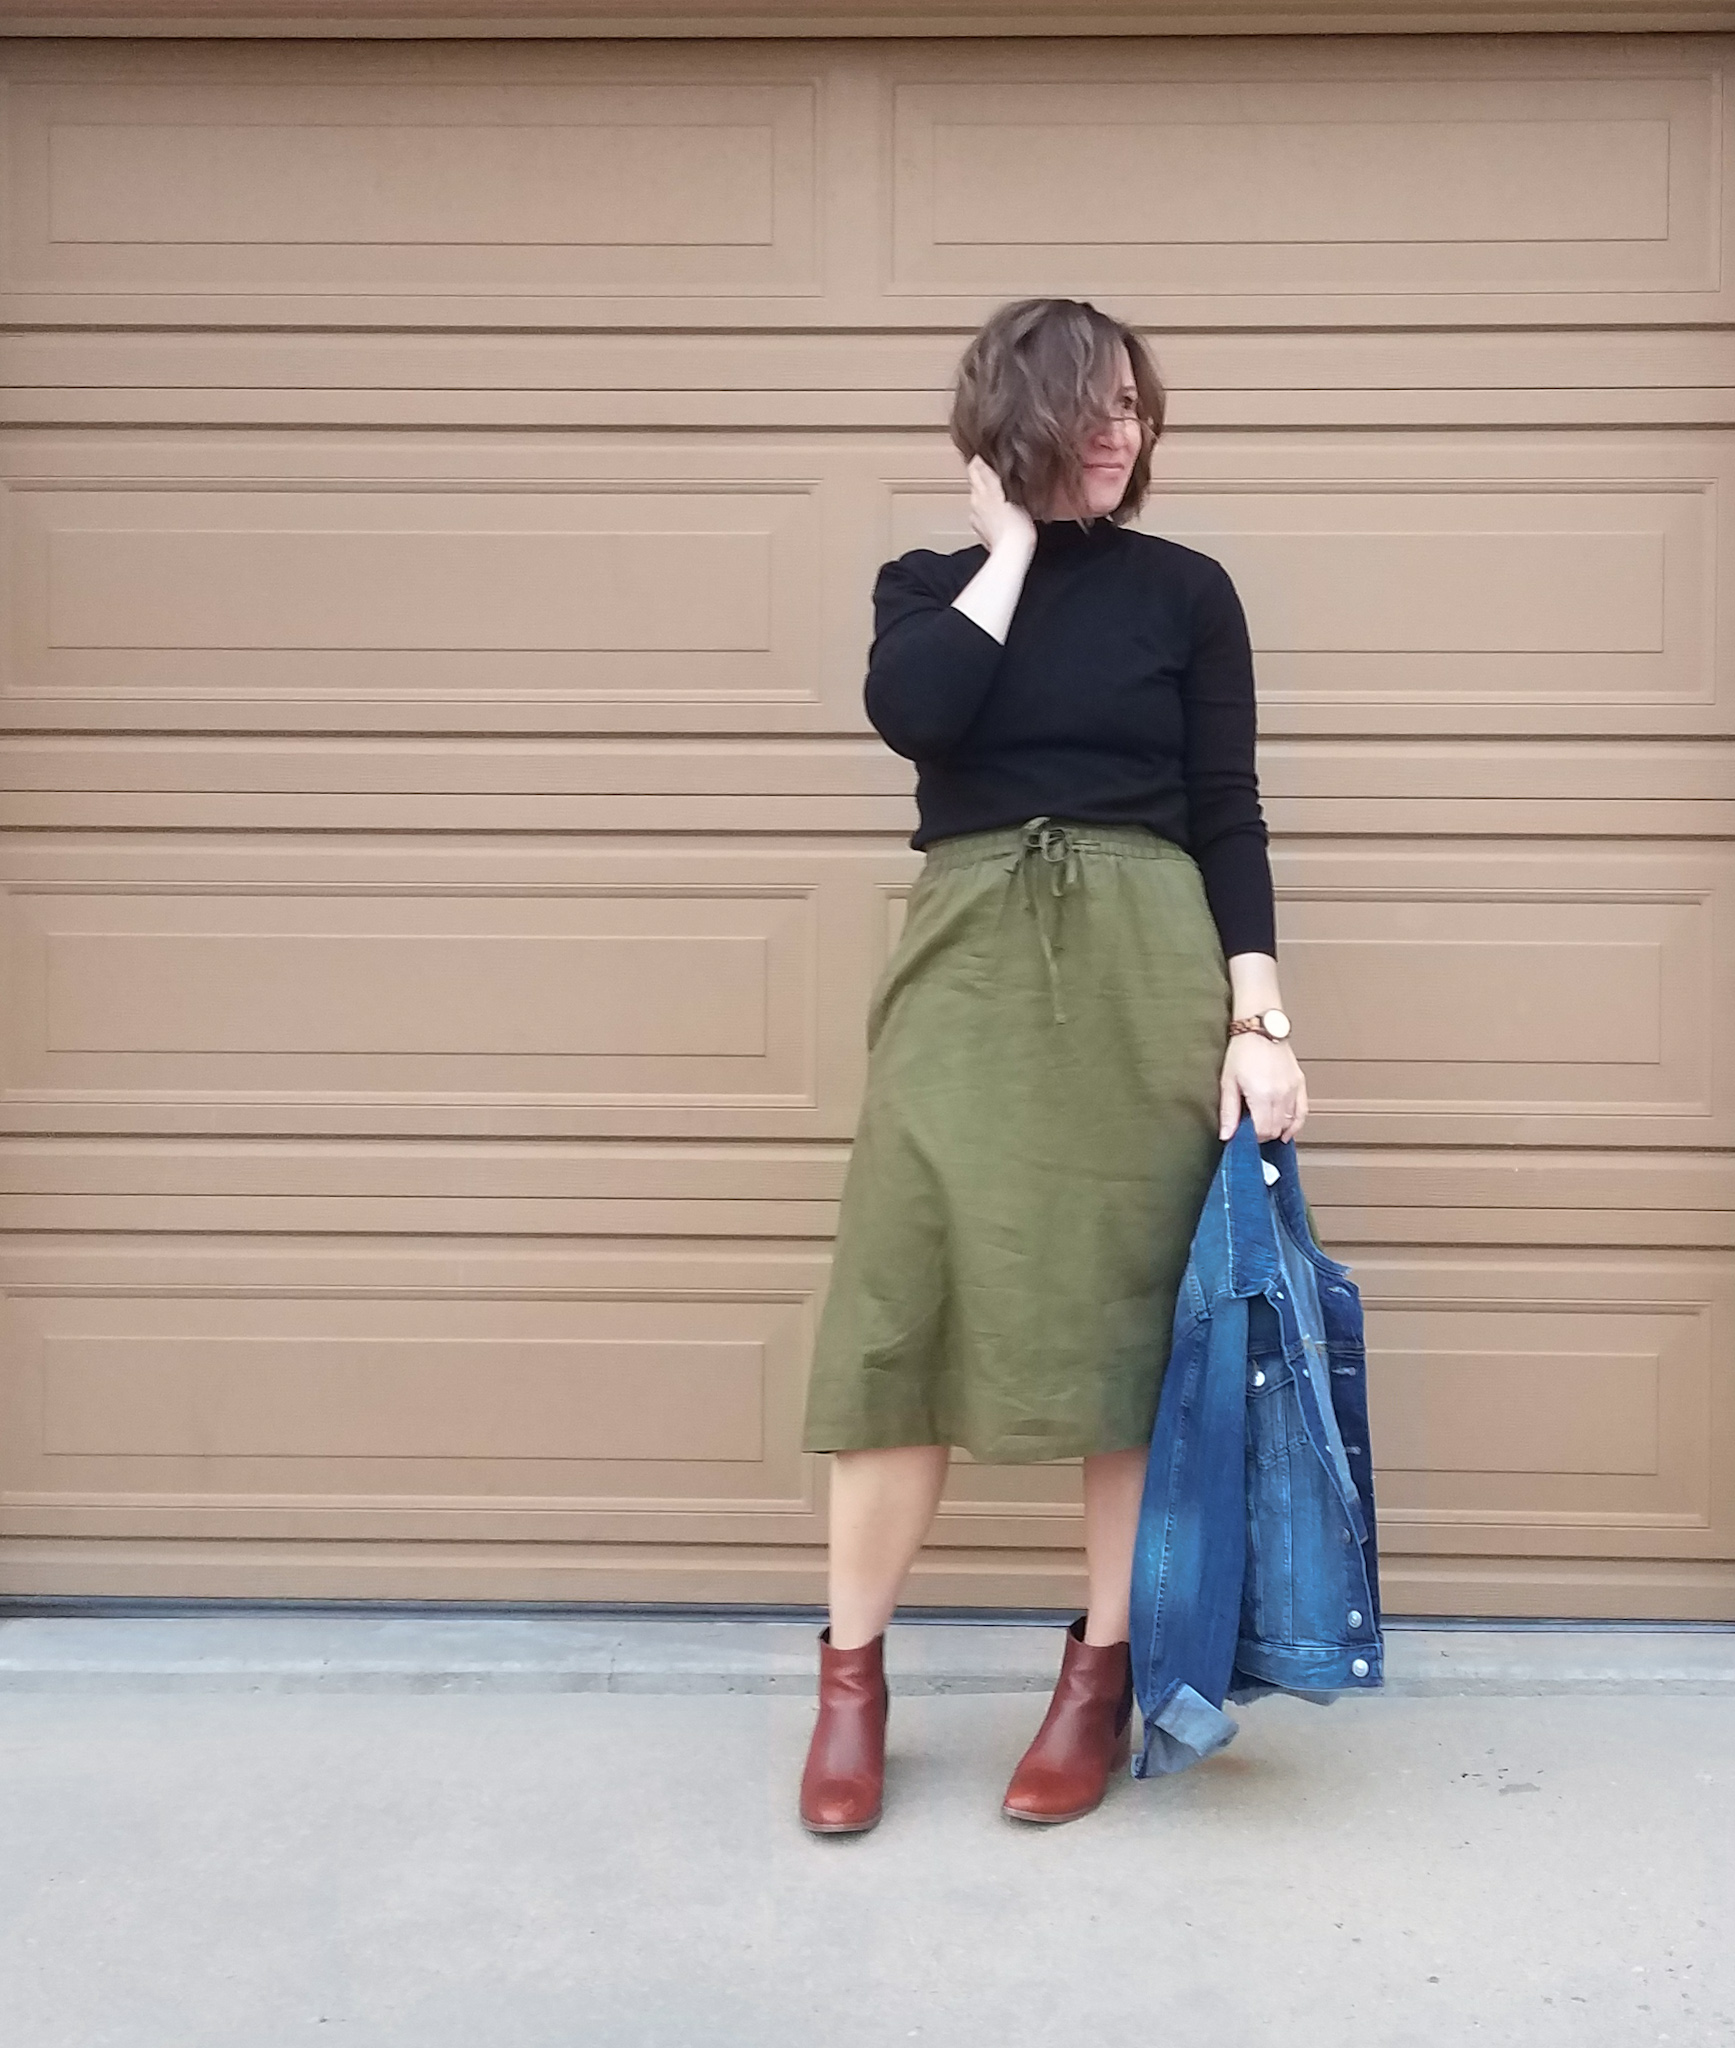 Casual Green Skirt Boots Look // Week Of Outfits With Paige Marchi On The Good Trade